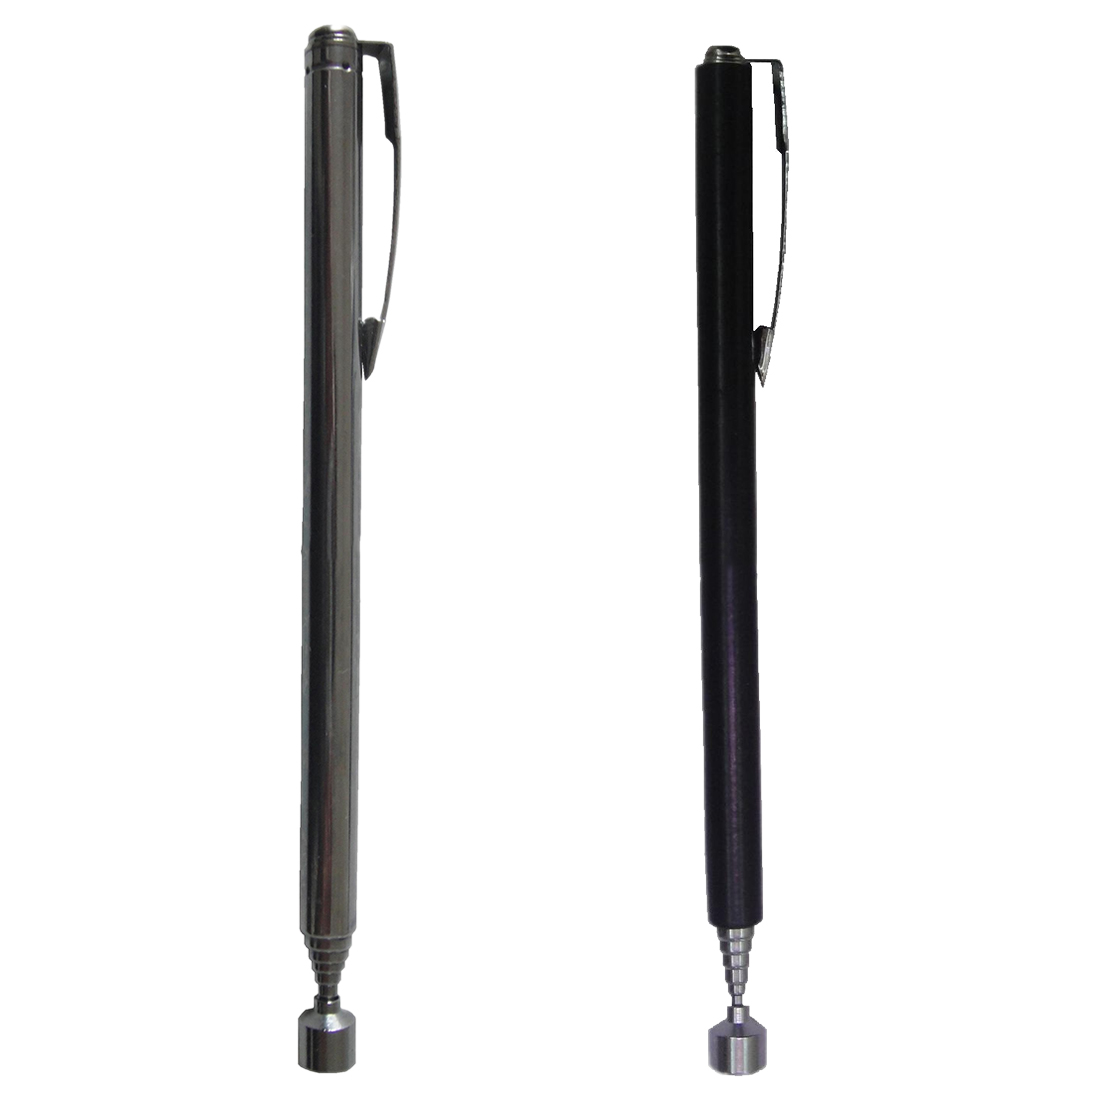 1pcs Black Portable Adjustable Pocket Magnetic Pick Up Pen Tools Rod Stick Extending Magnet Telescopic Easy Rod Handheld Tool